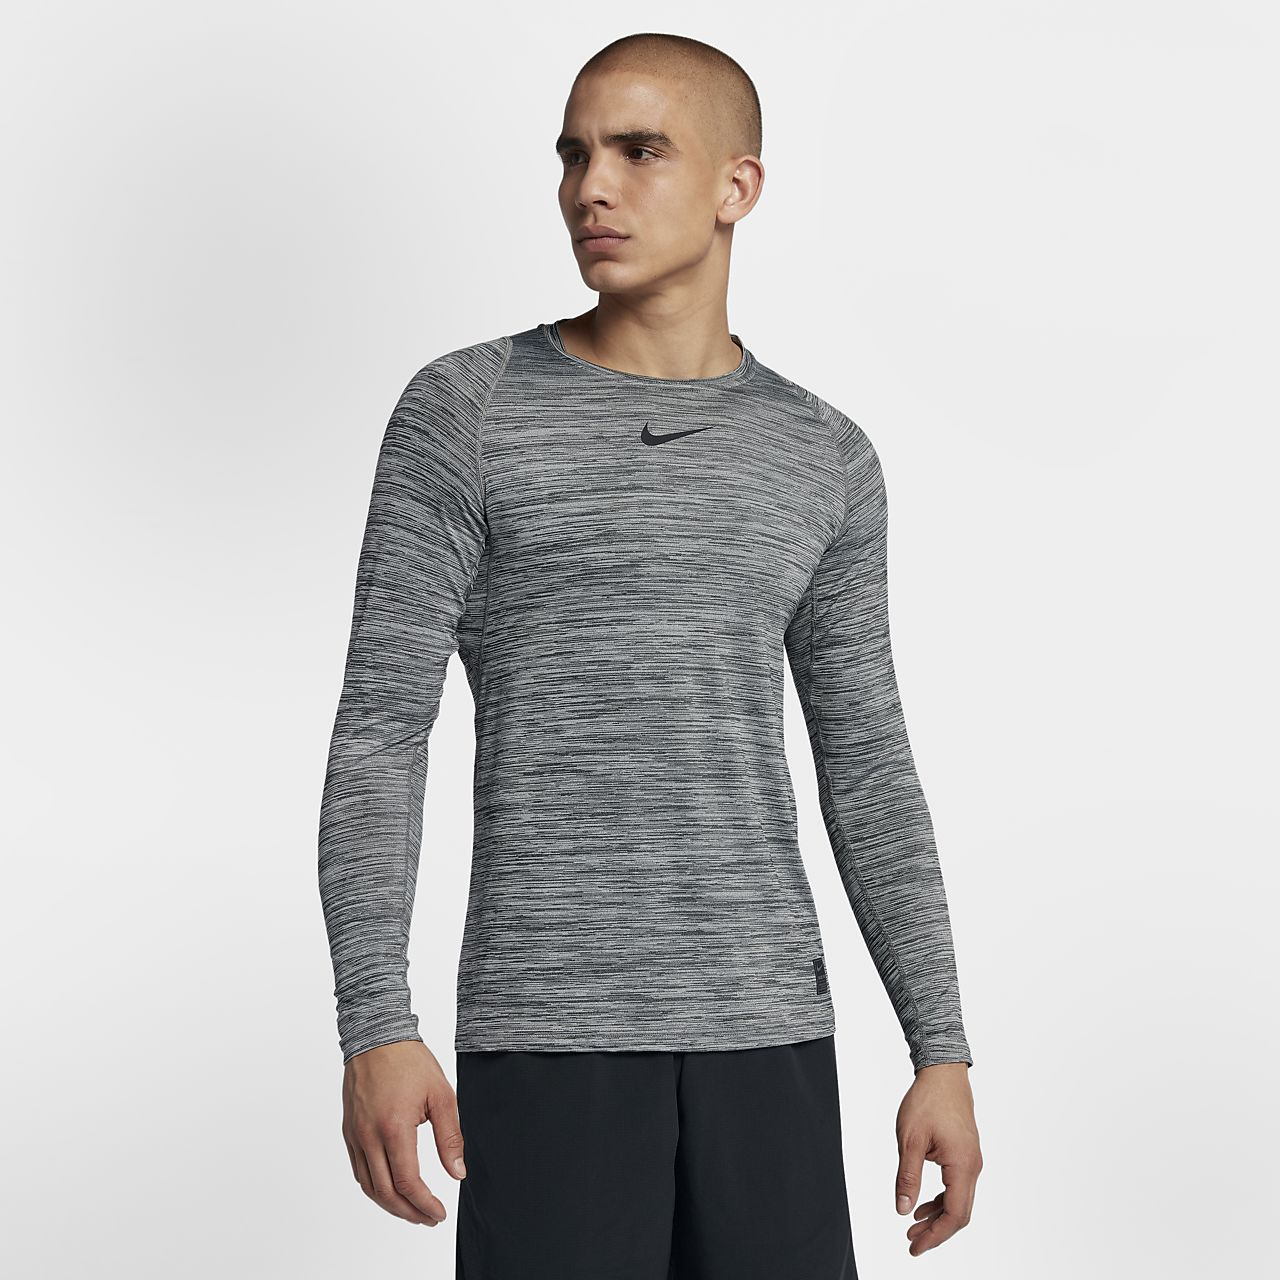 64c0323dab5f Nike Pro Fitted Men s Long Sleeve Training Top. Nike.com